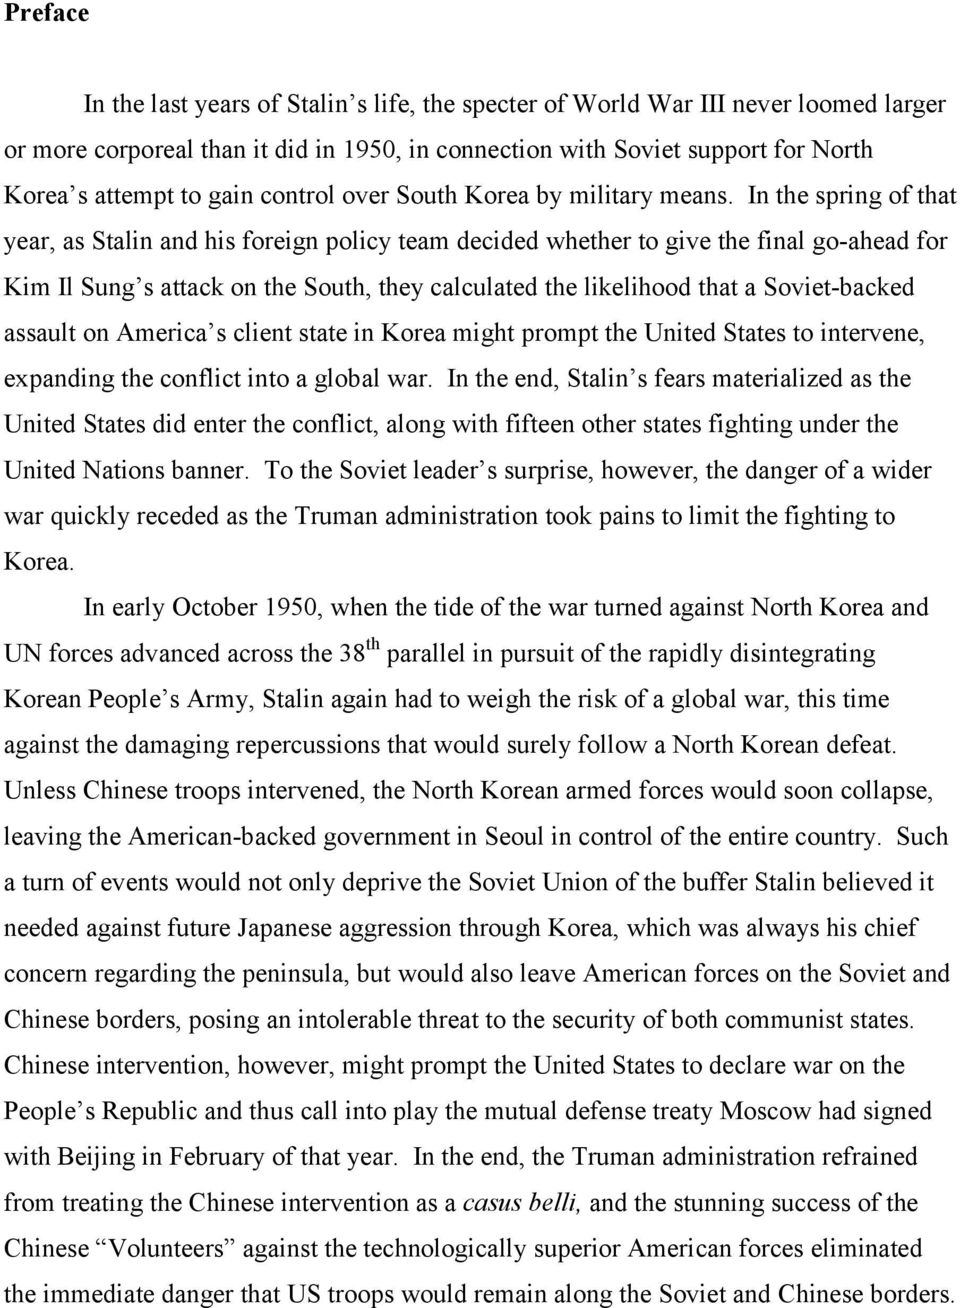 In the spring of that year, as Stalin and his foreign policy team decided whether to give the final go-ahead for Kim Il Sung s attack on the South, they calculated the likelihood that a Soviet-backed